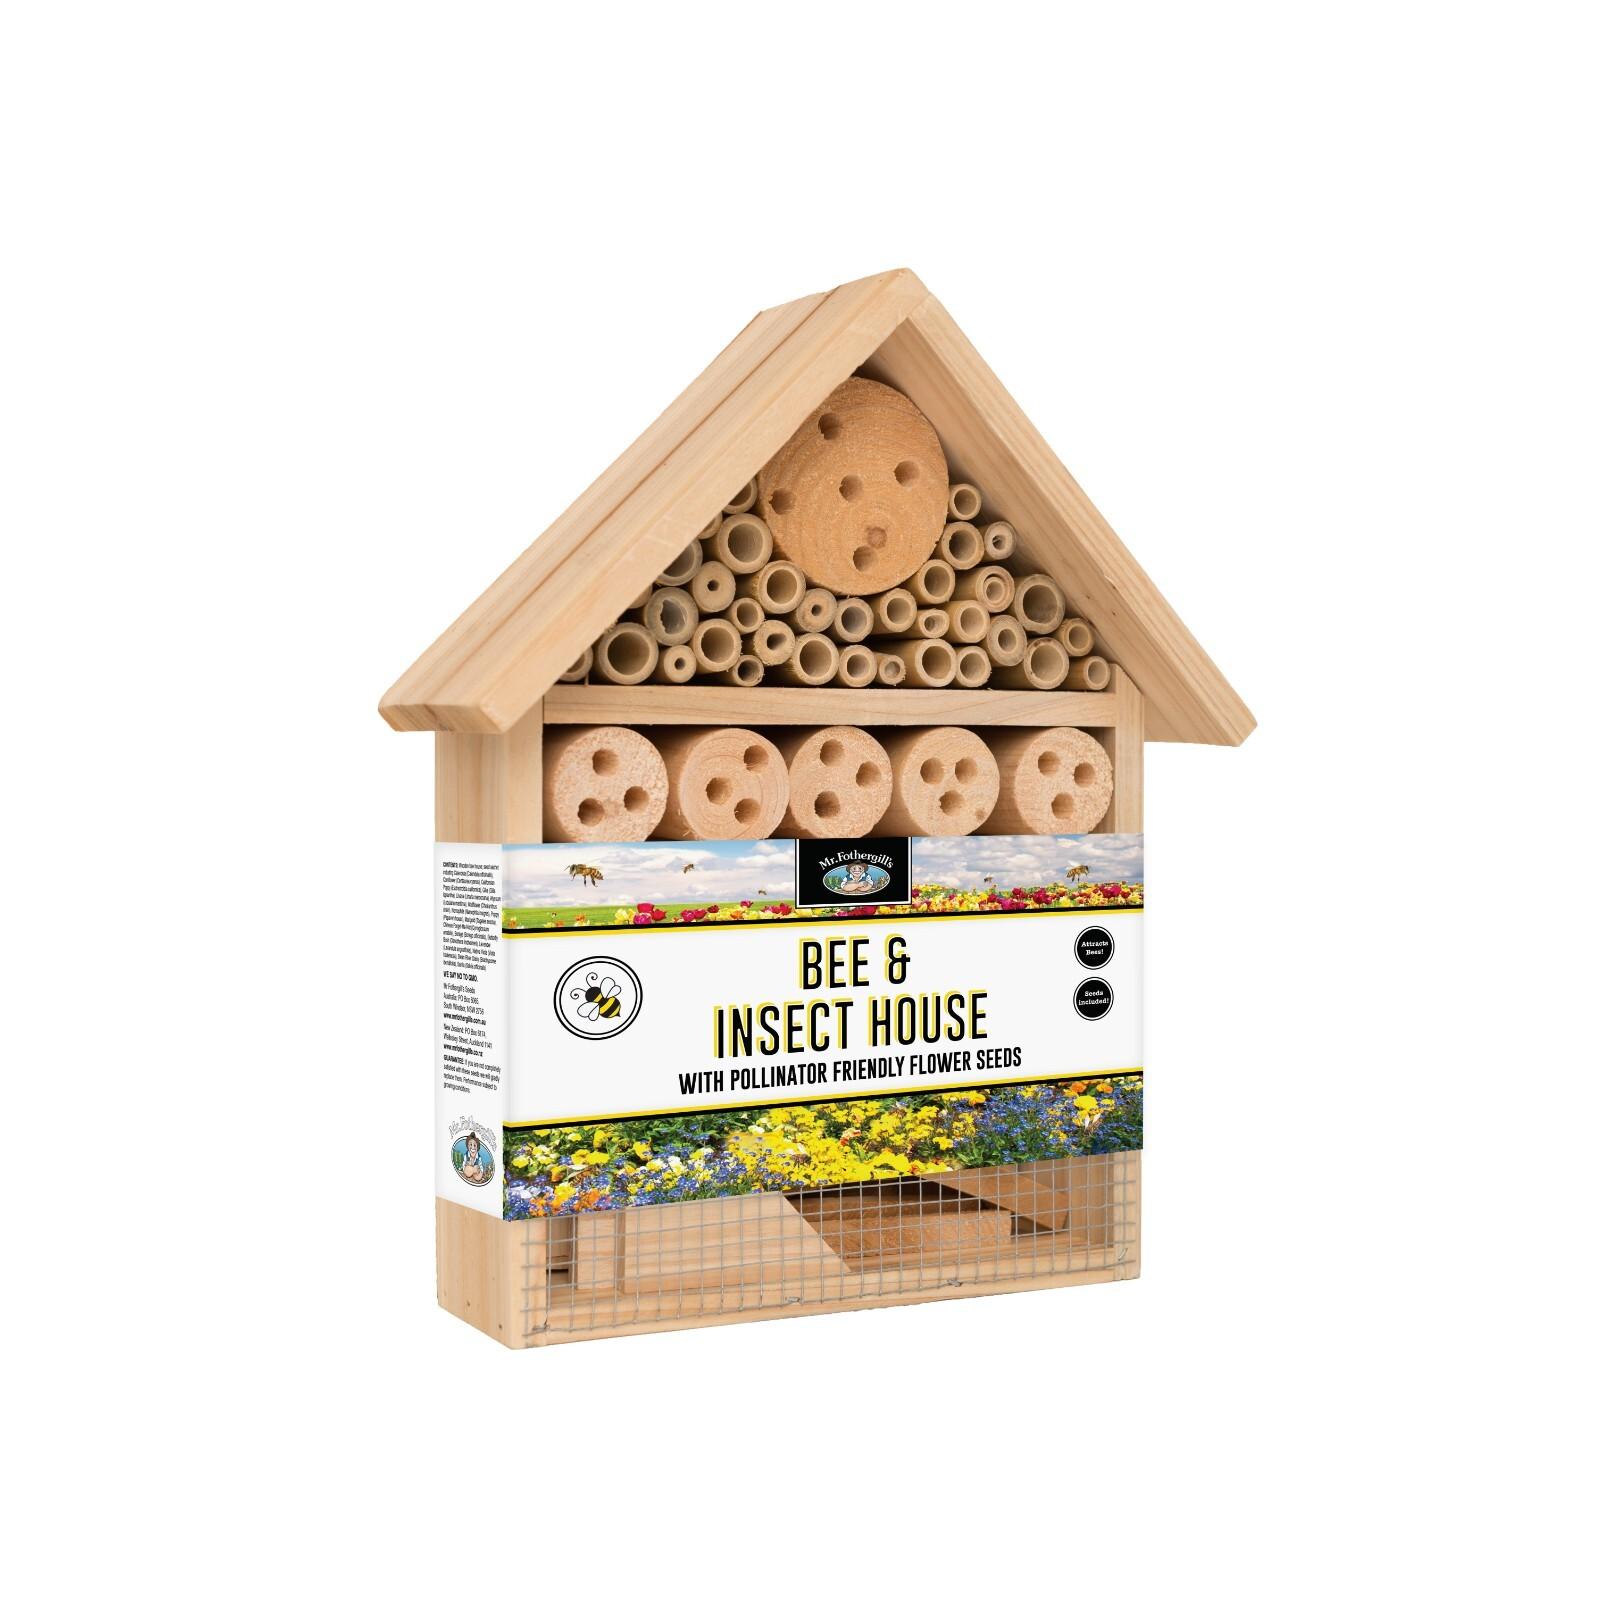 Mr Fothergill's Large Bee And Insect House